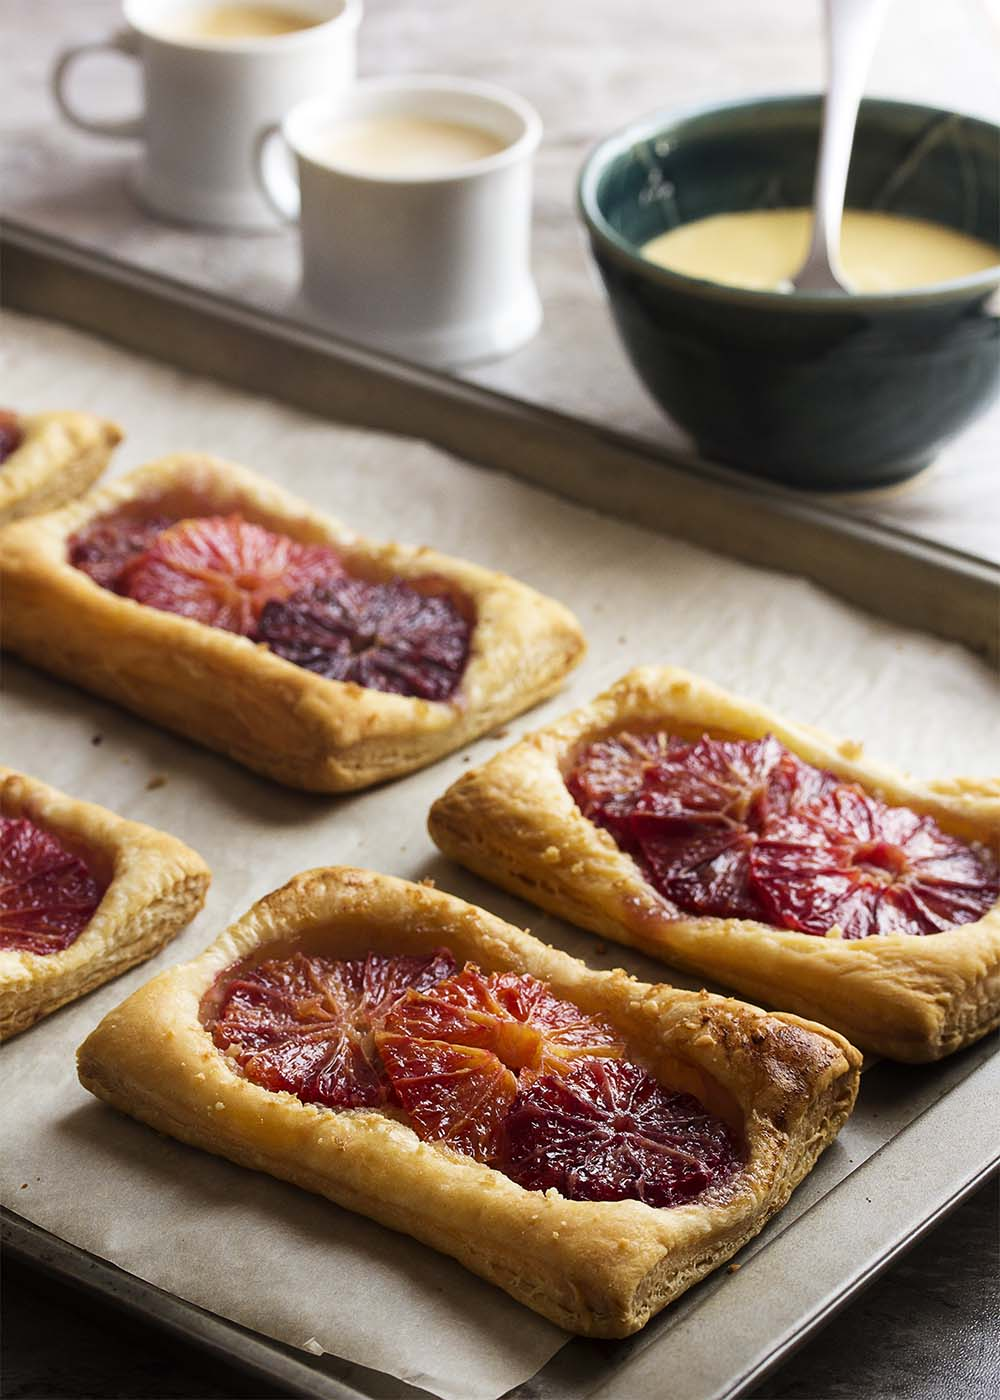 Looking for an easy but impressive dessert? Puff pastry and blood oranges make these orange galettes both beautiful and a snap to bake. | justalittlebitofbacon.com